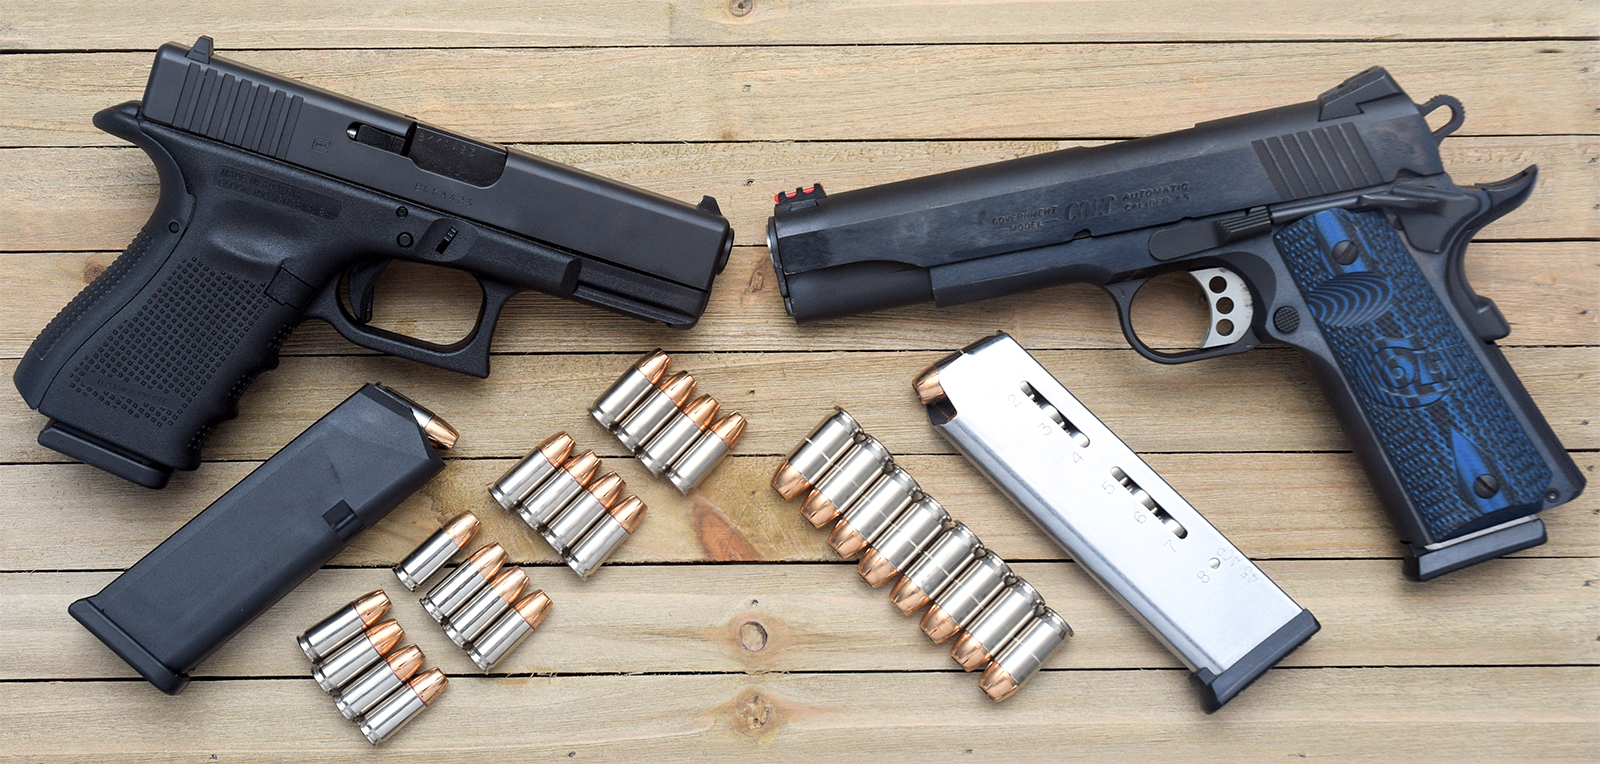 Rounds in a Glock vs Rounds in a 1911